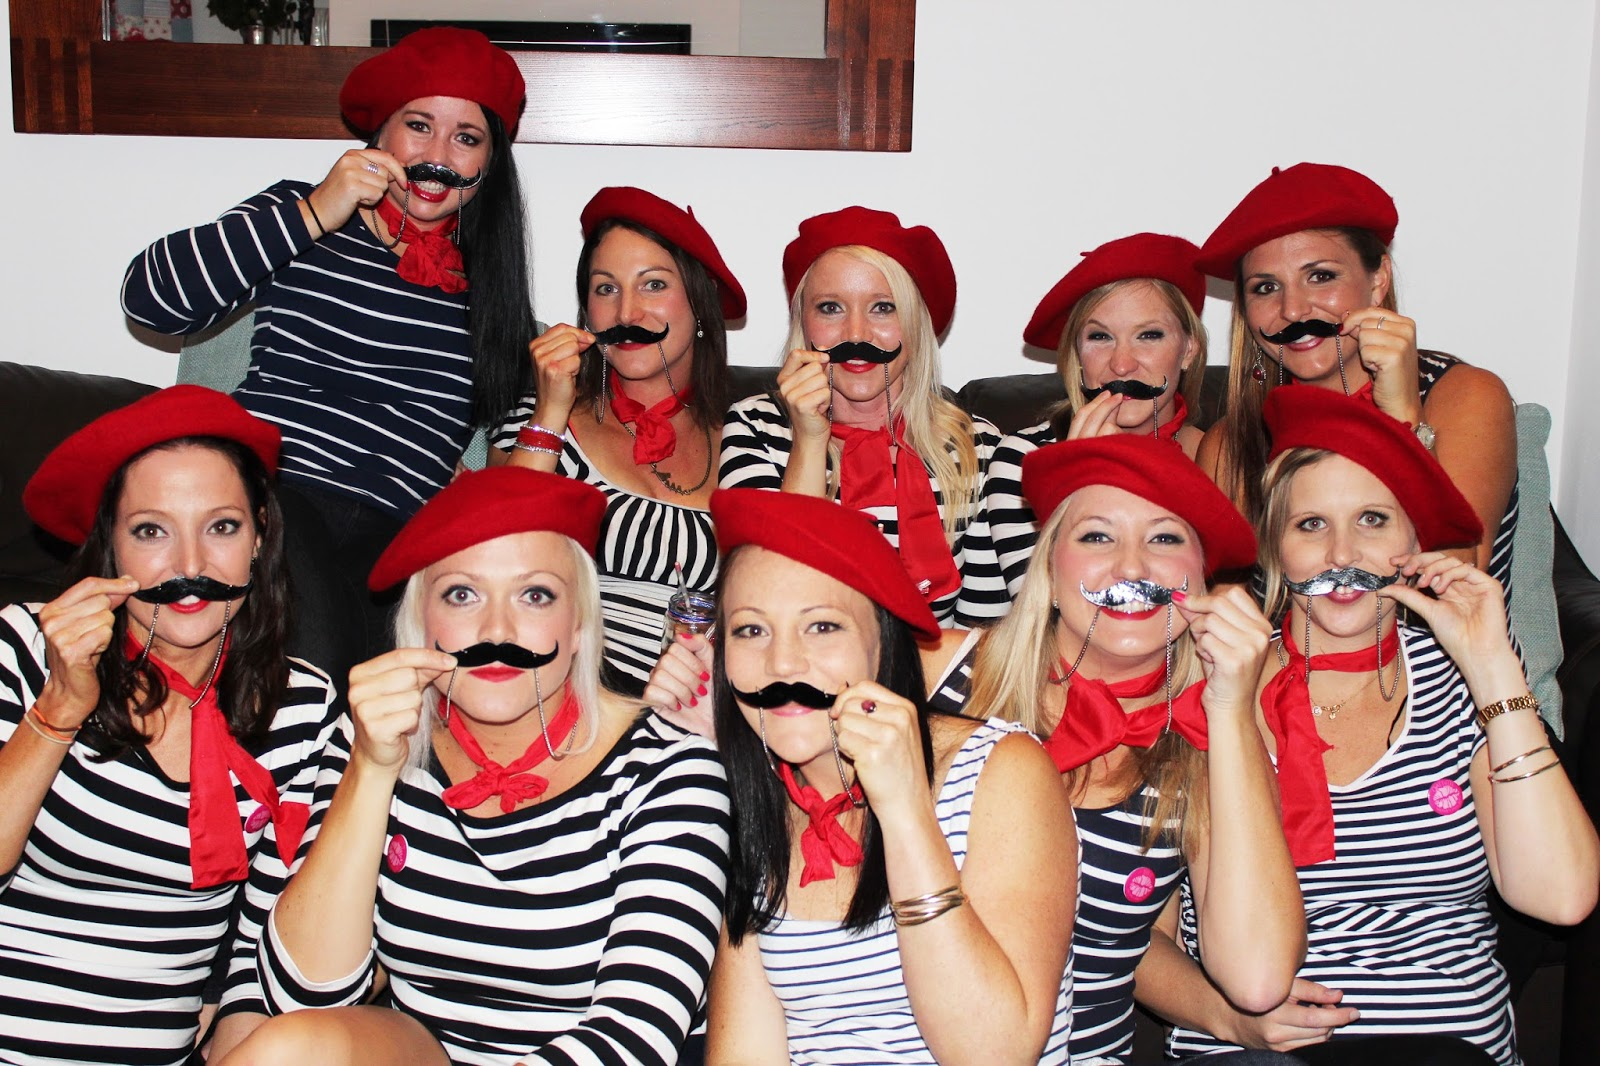 Dress Up Party Themes For Adults | Midway Media